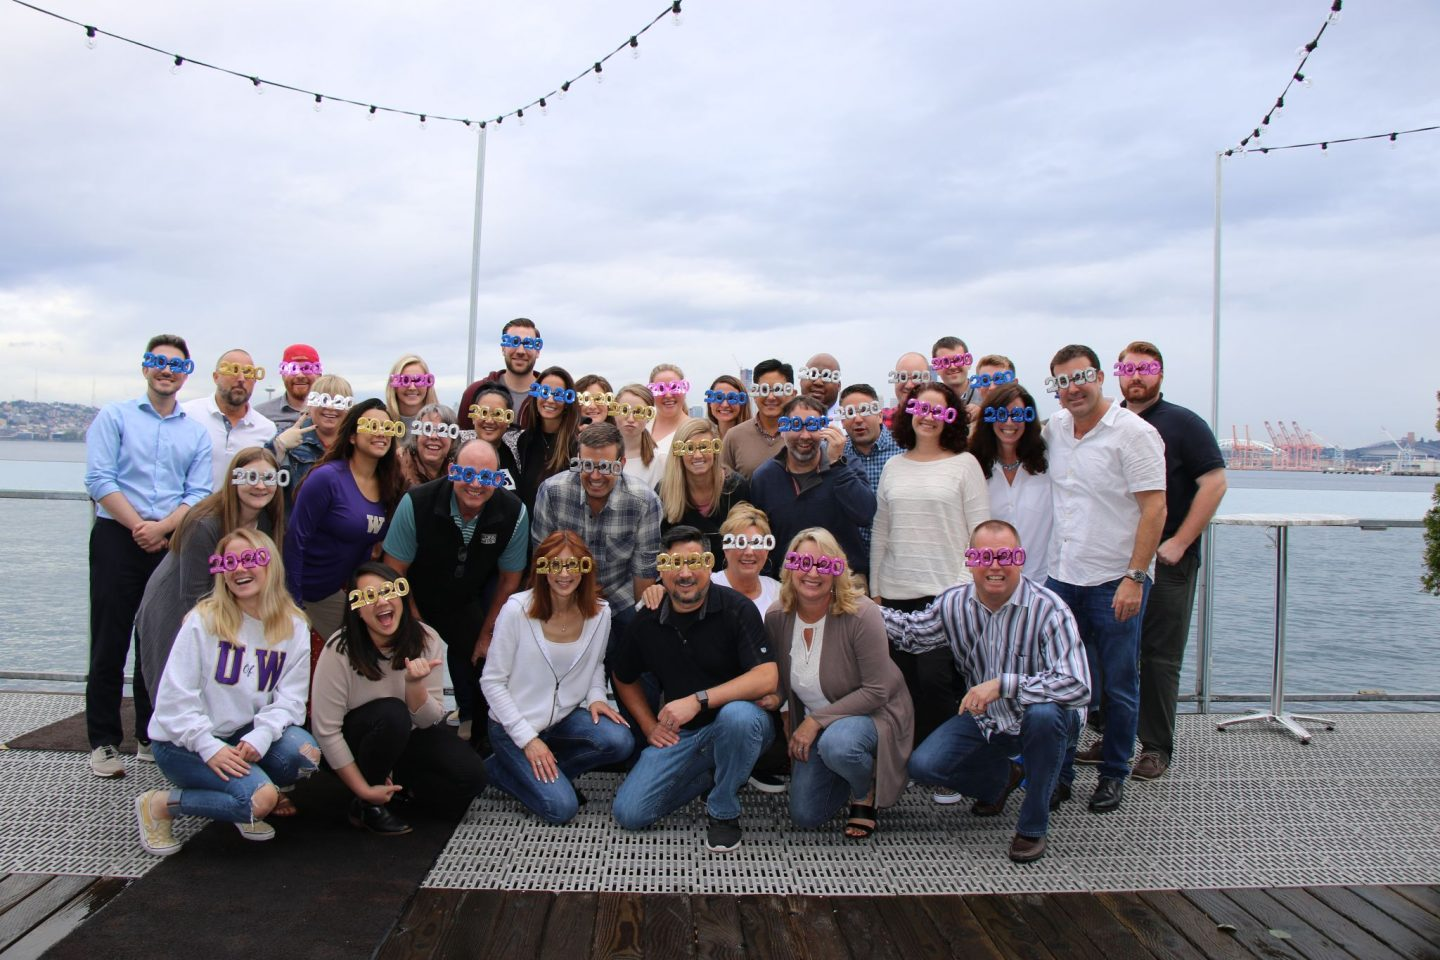 KING 5 Sales Team, a TEGNA Company, celebrates their annual strategy plan meeting with 20/20 Vision on 2020, including 2020 Tokyo Olympics and Epic Sponsorship Opportunities